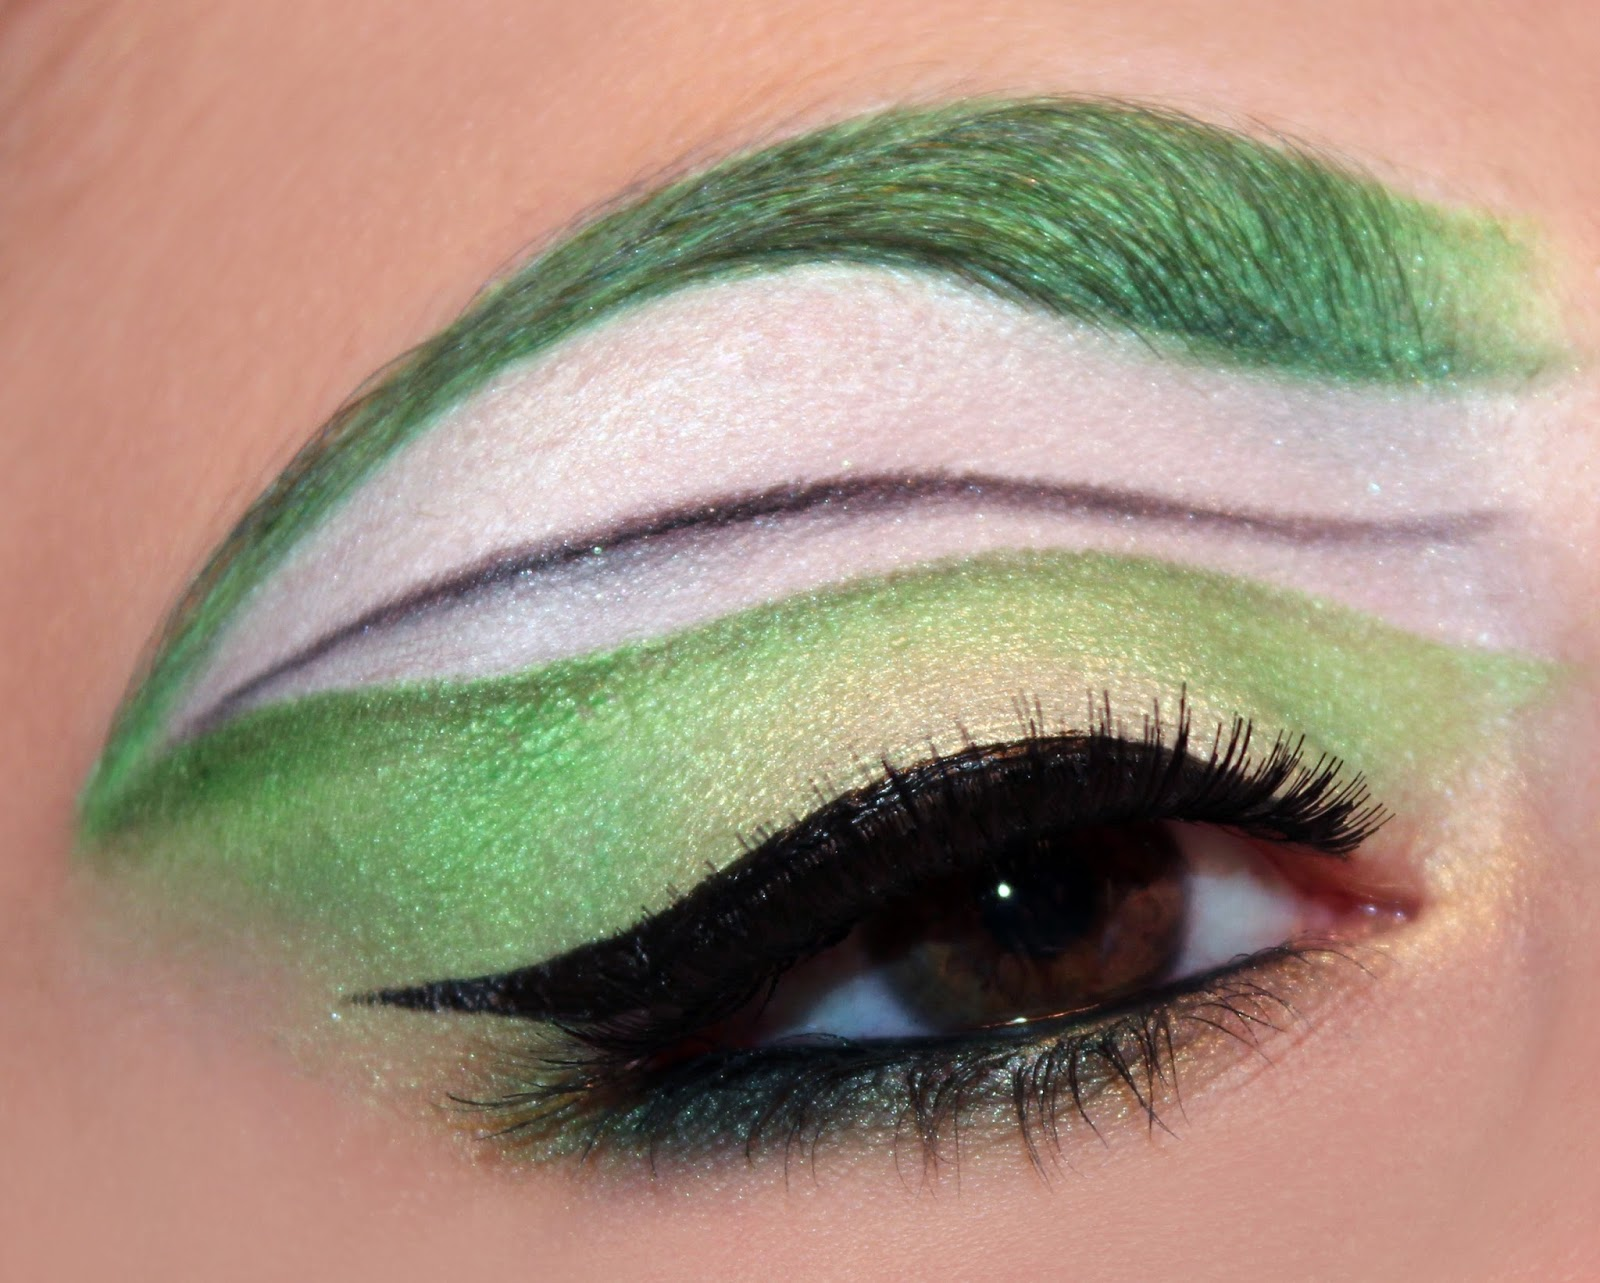 Luhivy S Favorite Things Pokemon Series Scyther Inspired Makeup Look